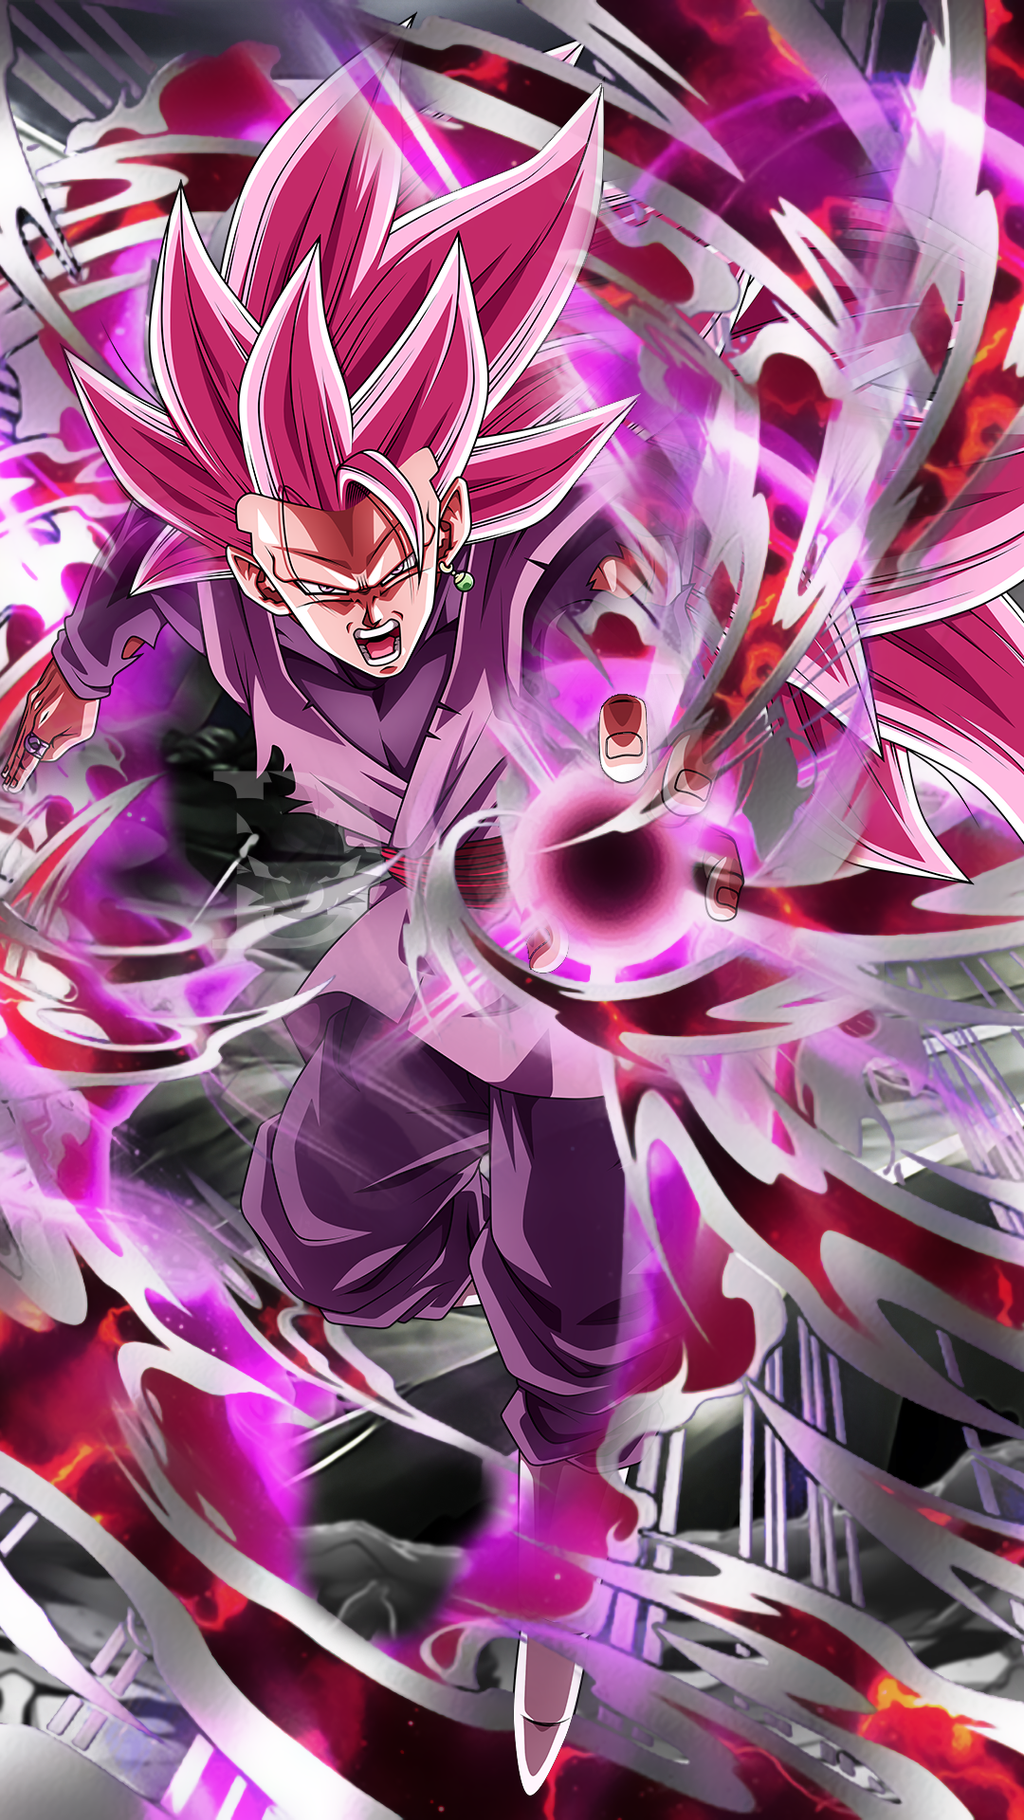 Davidmaxsteinbach Goku Black Super Saiyan Rose 3 Wallpaper By